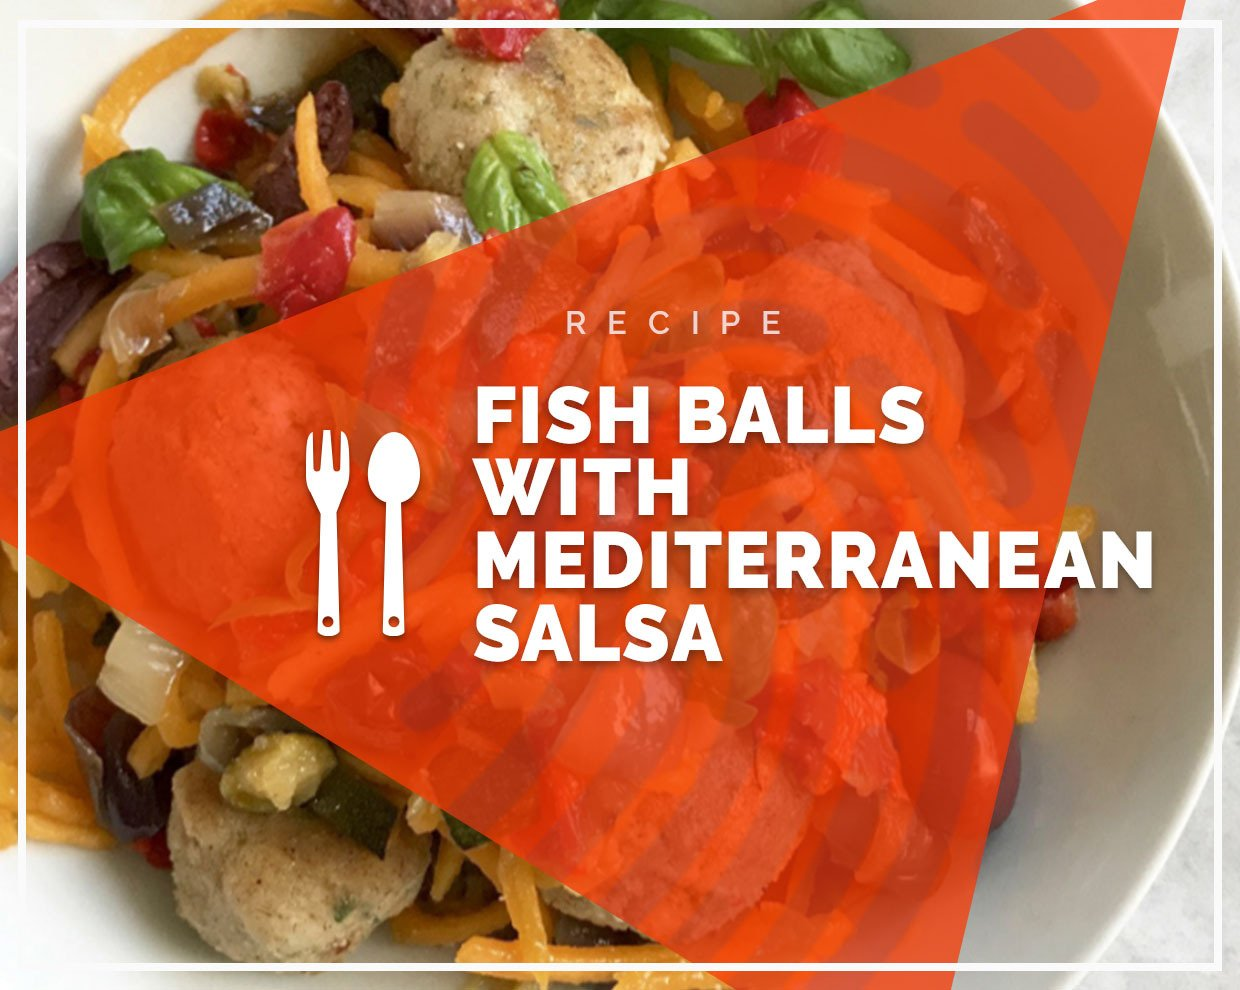 Fish balls with mediterranean salsa